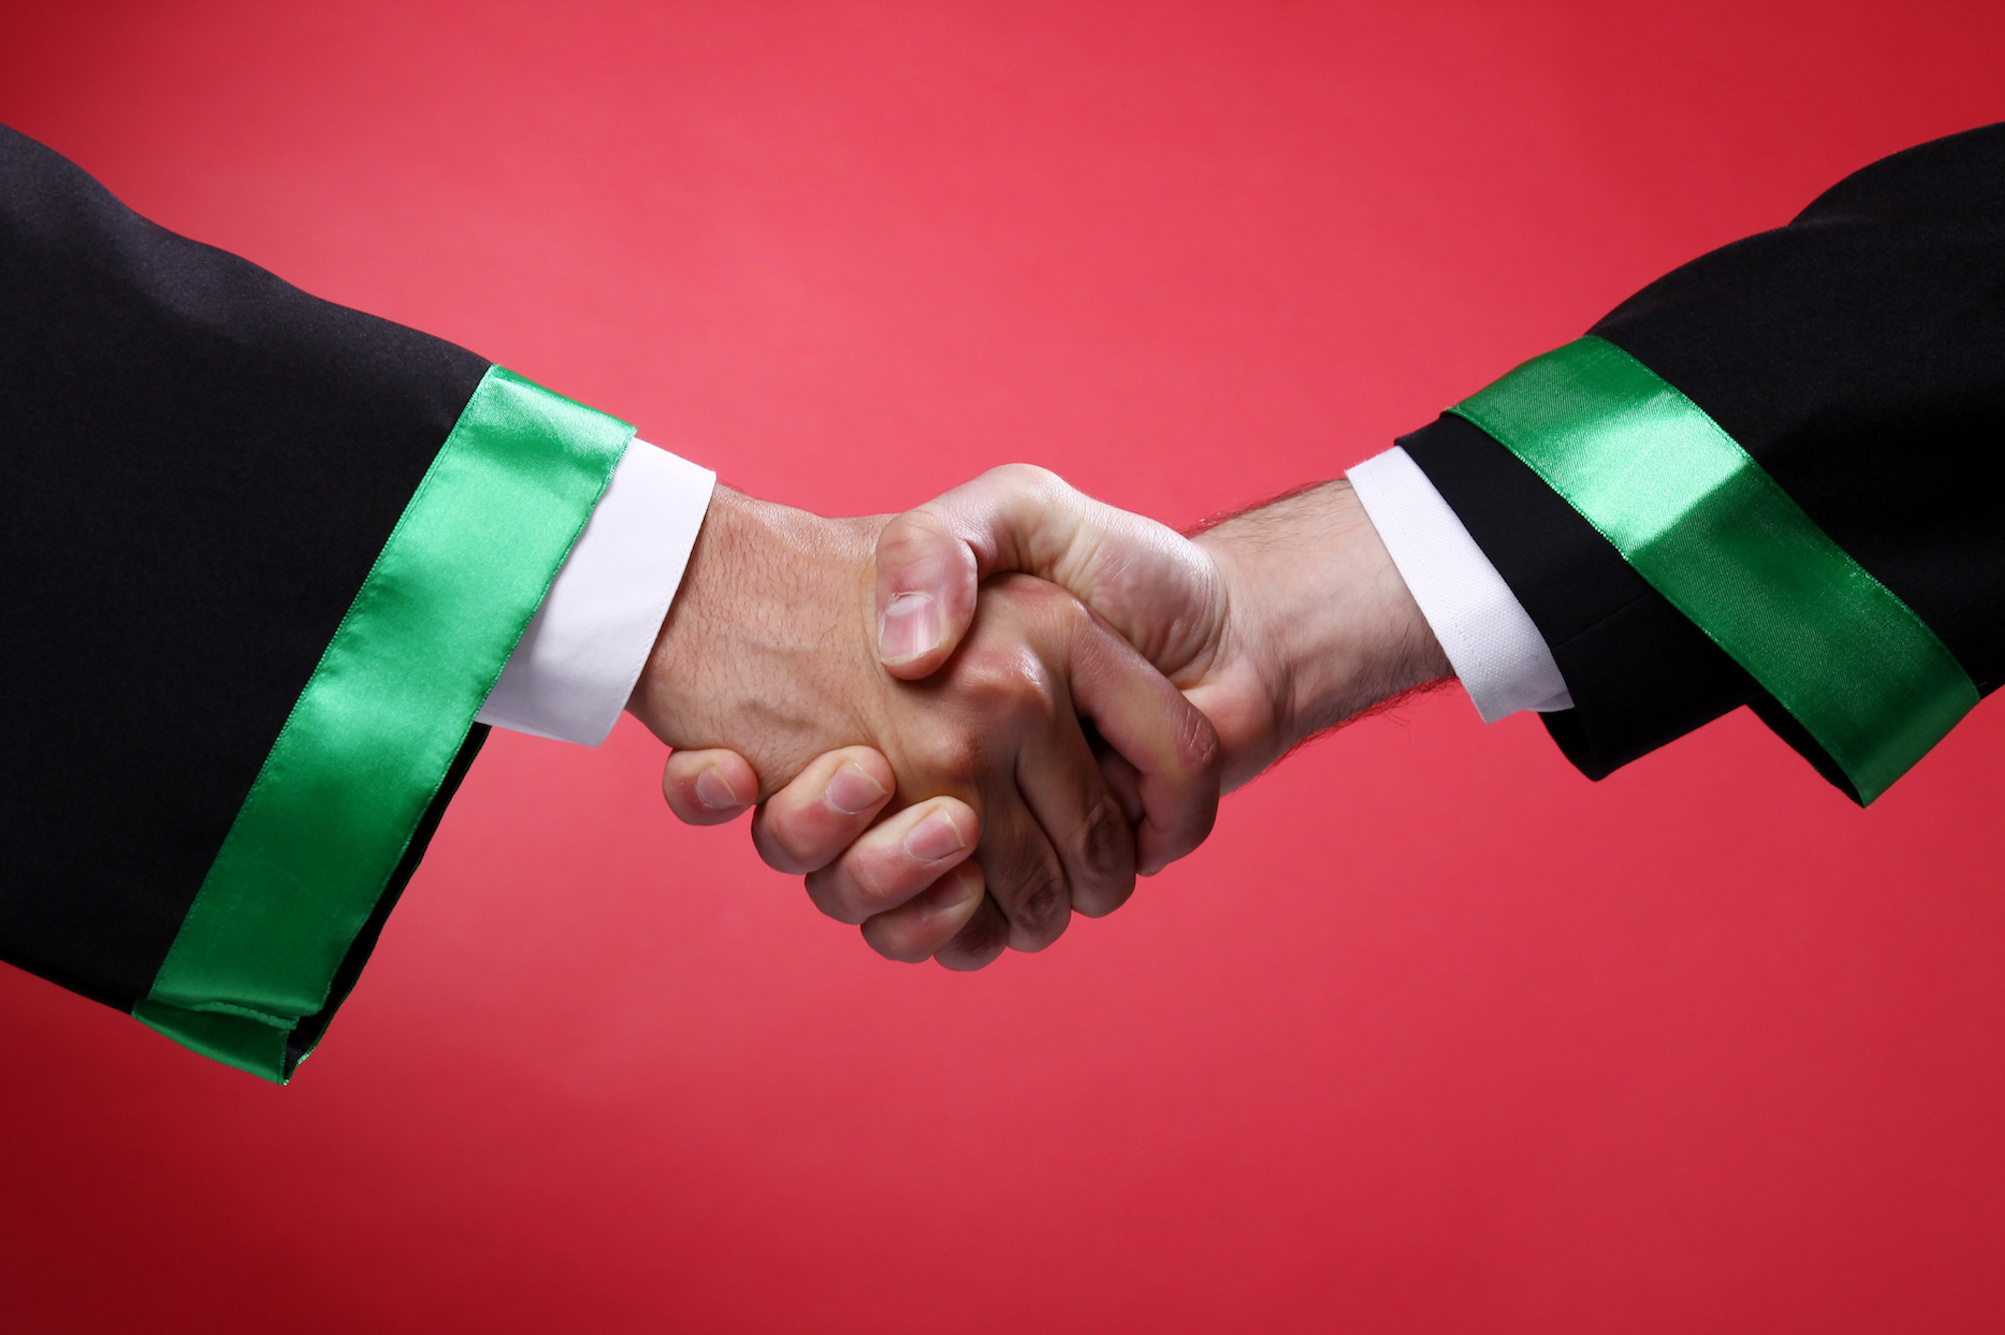 Two hands with green-trimmed sleeves